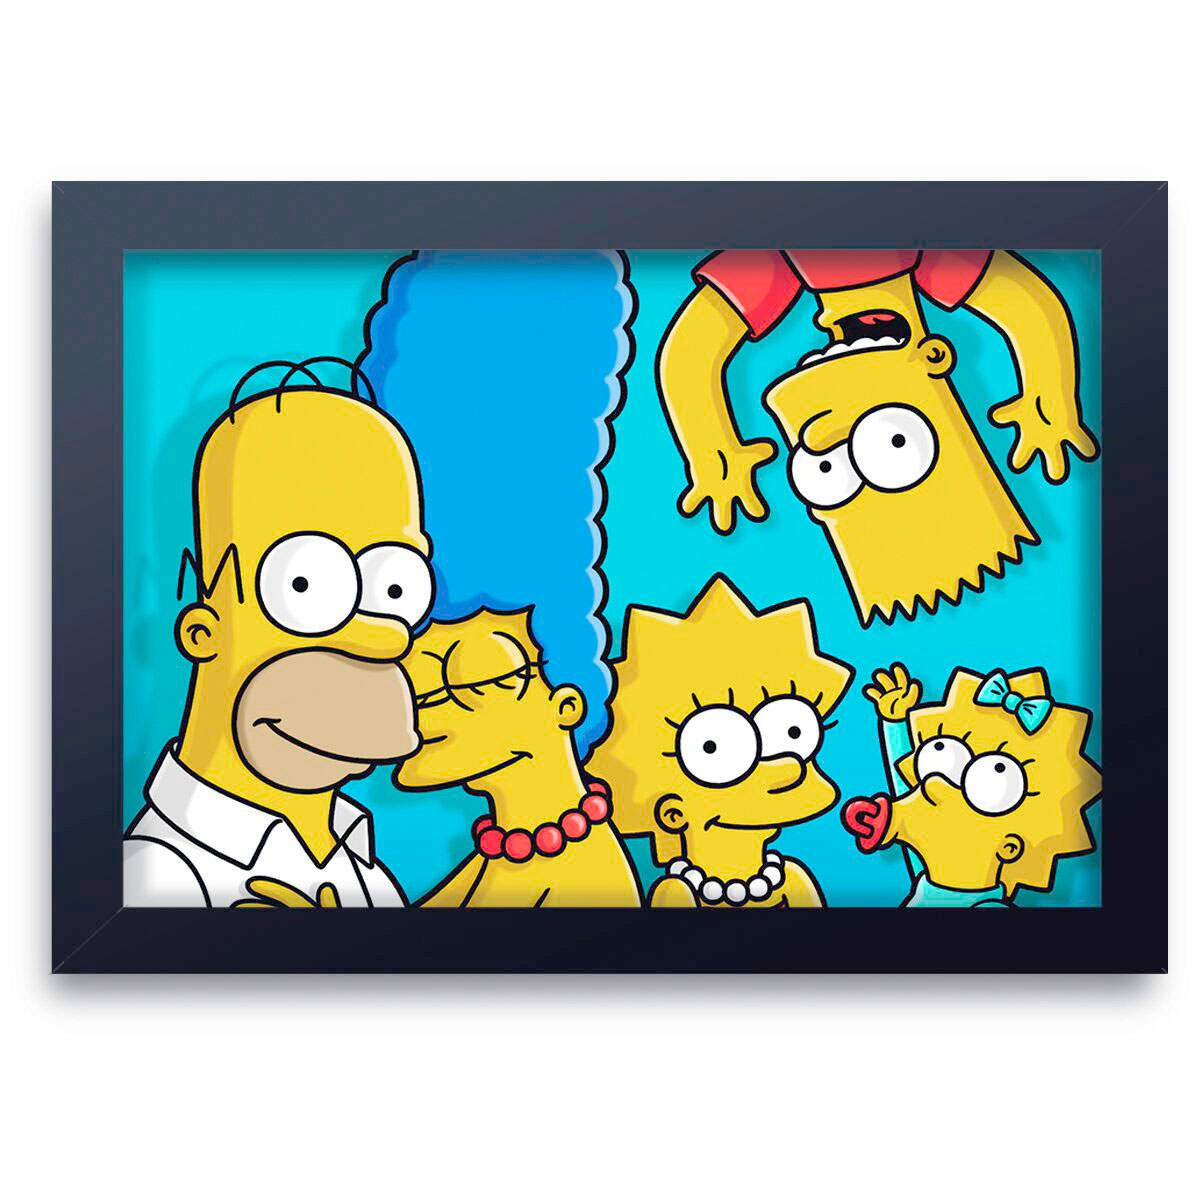 Quadro Decorativo Os Simpsons 07